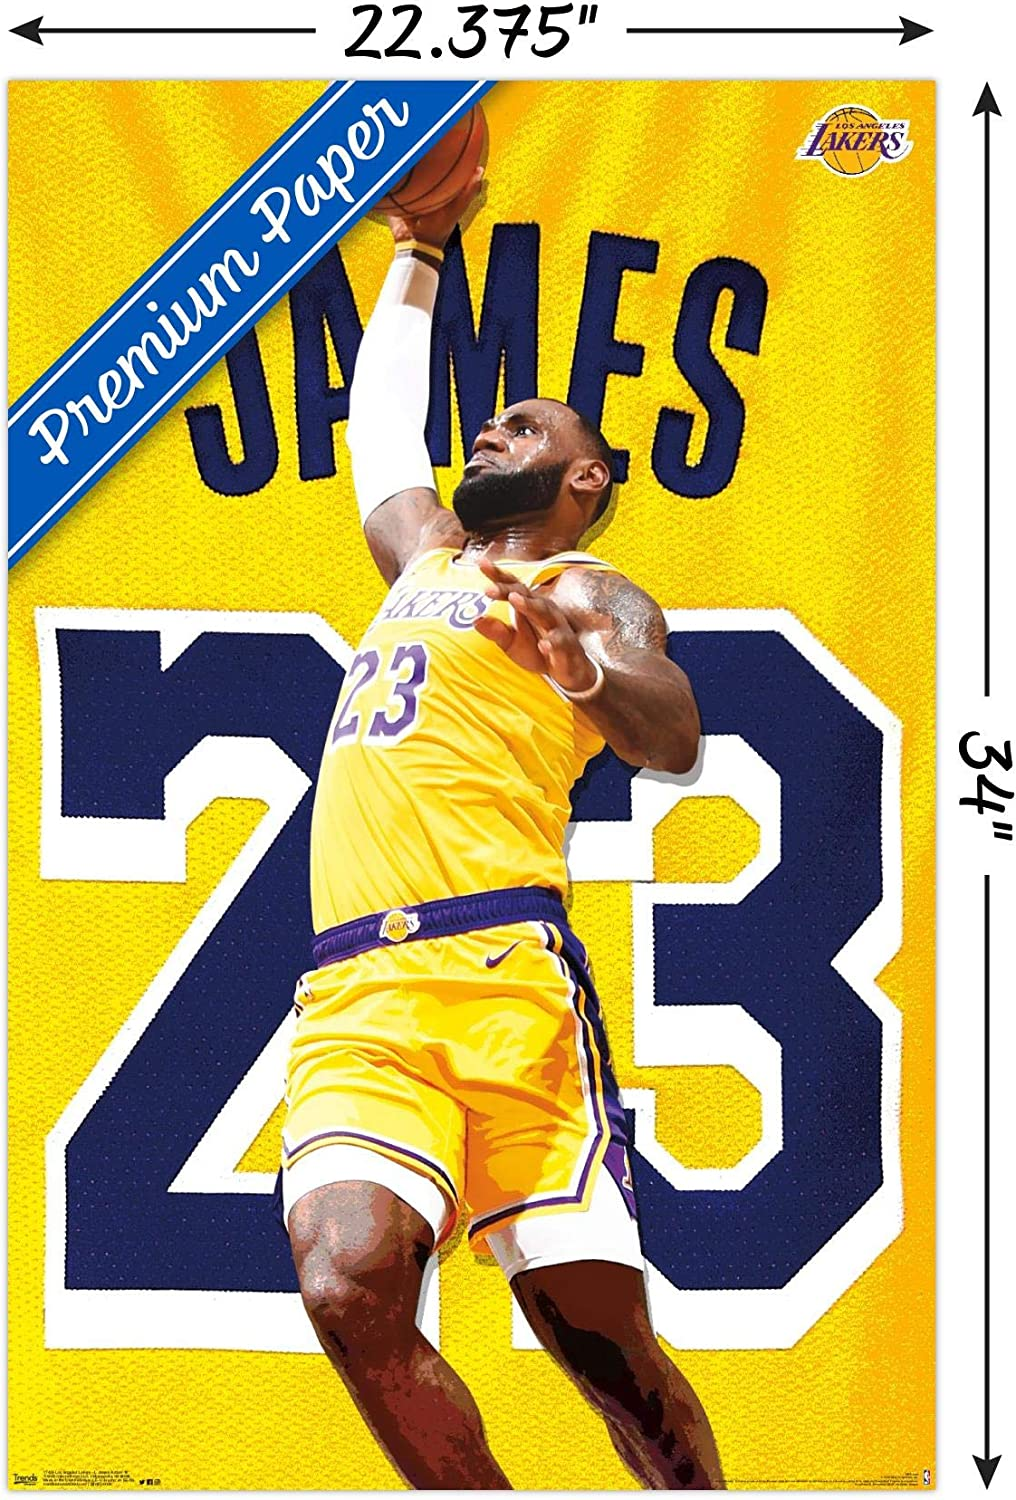 Amazon Com Trends International Nba Los Angeles Lakers Lebron James 2018 Wall Poster 22 375 X 34 Premium Unframed Version Home Kitchen